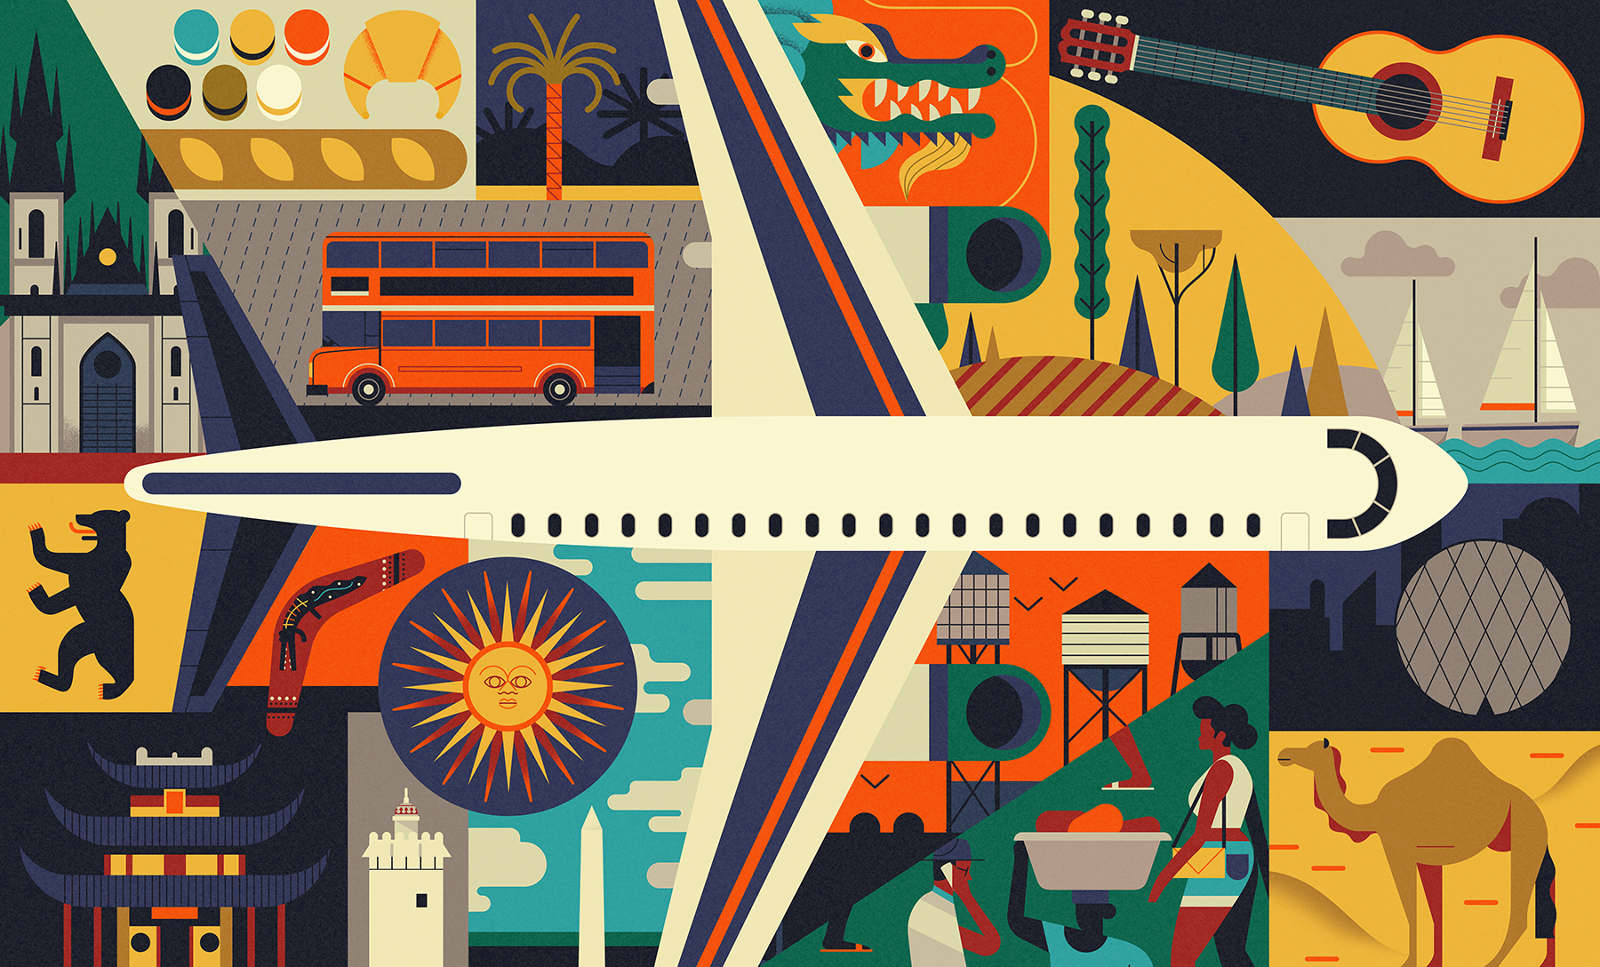 NYU-New-York-Illustration-Owen-Davey-Travel-Plane-London-Bus-Guitar-Tuscany-Camel-Dubai-Shanghai-Dragon-Baguette-Berlin-Boomerang-Skyline-Argentina_1600_c.jpg